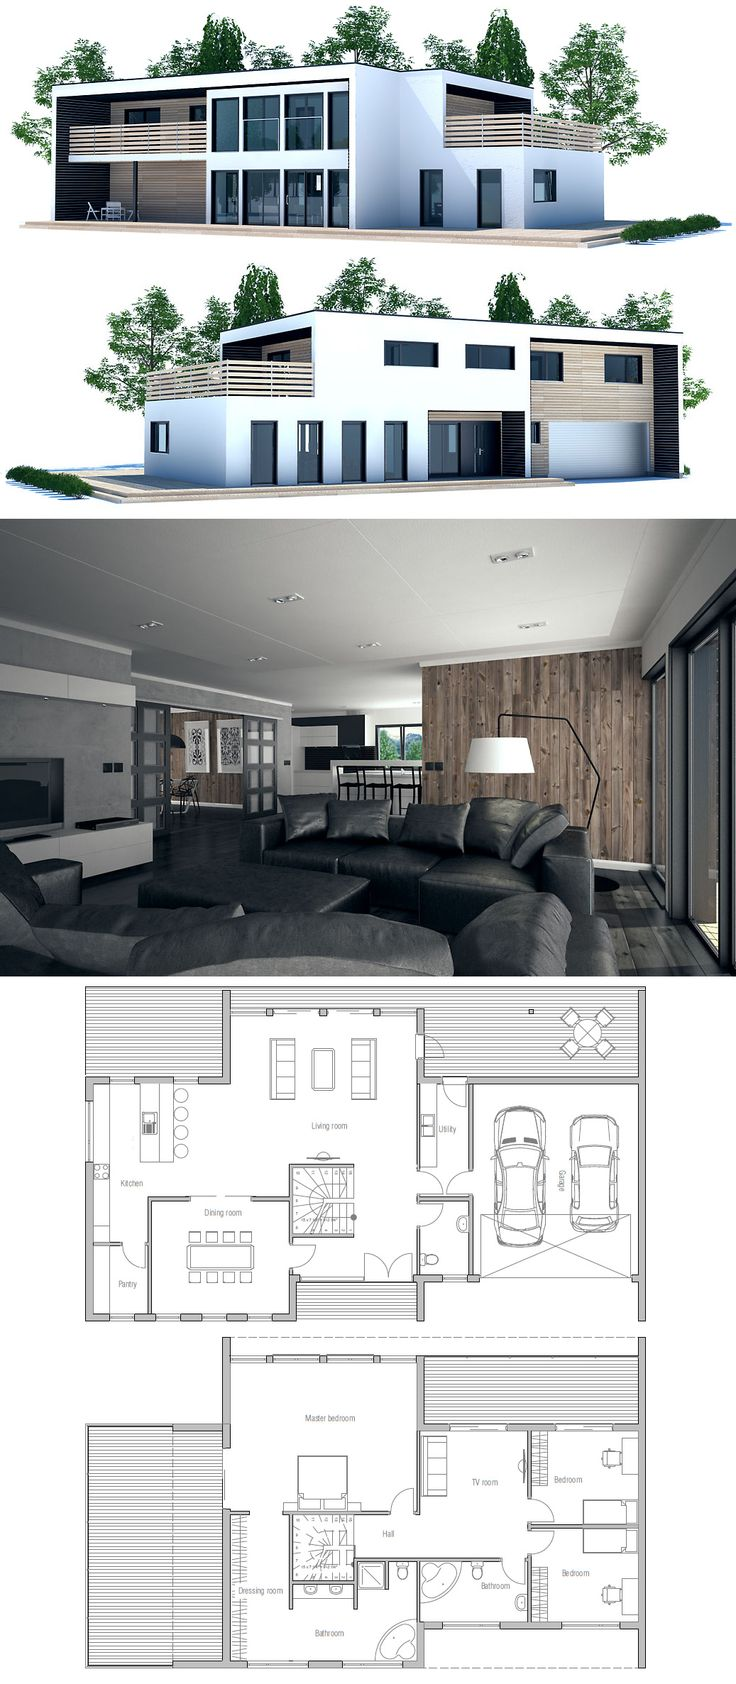 Great Contemporary Home Plans. Beautiful Dream Home Plans In Modern Architecture.